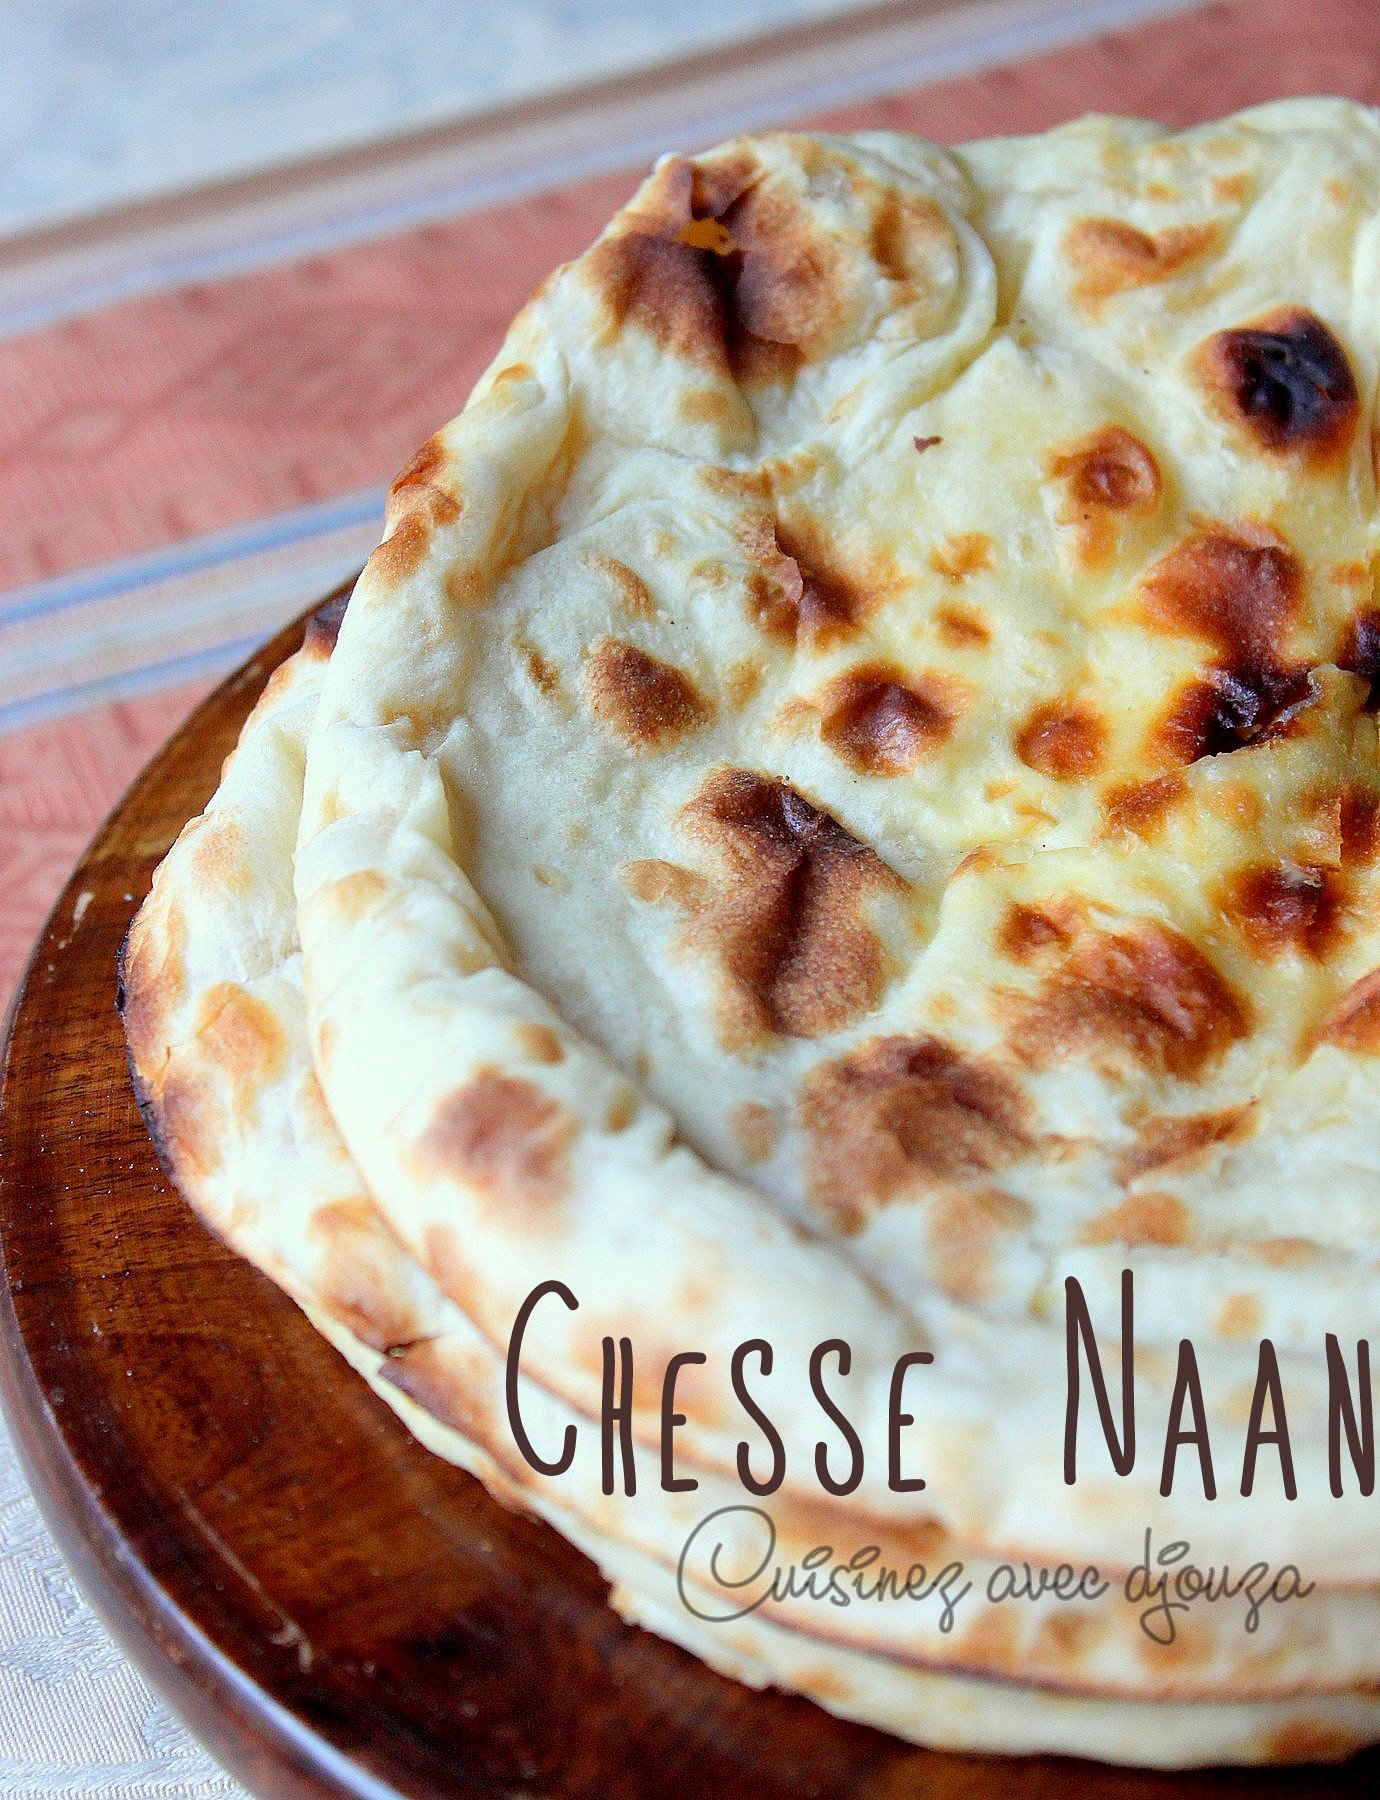 Naan au fromage cheese naan